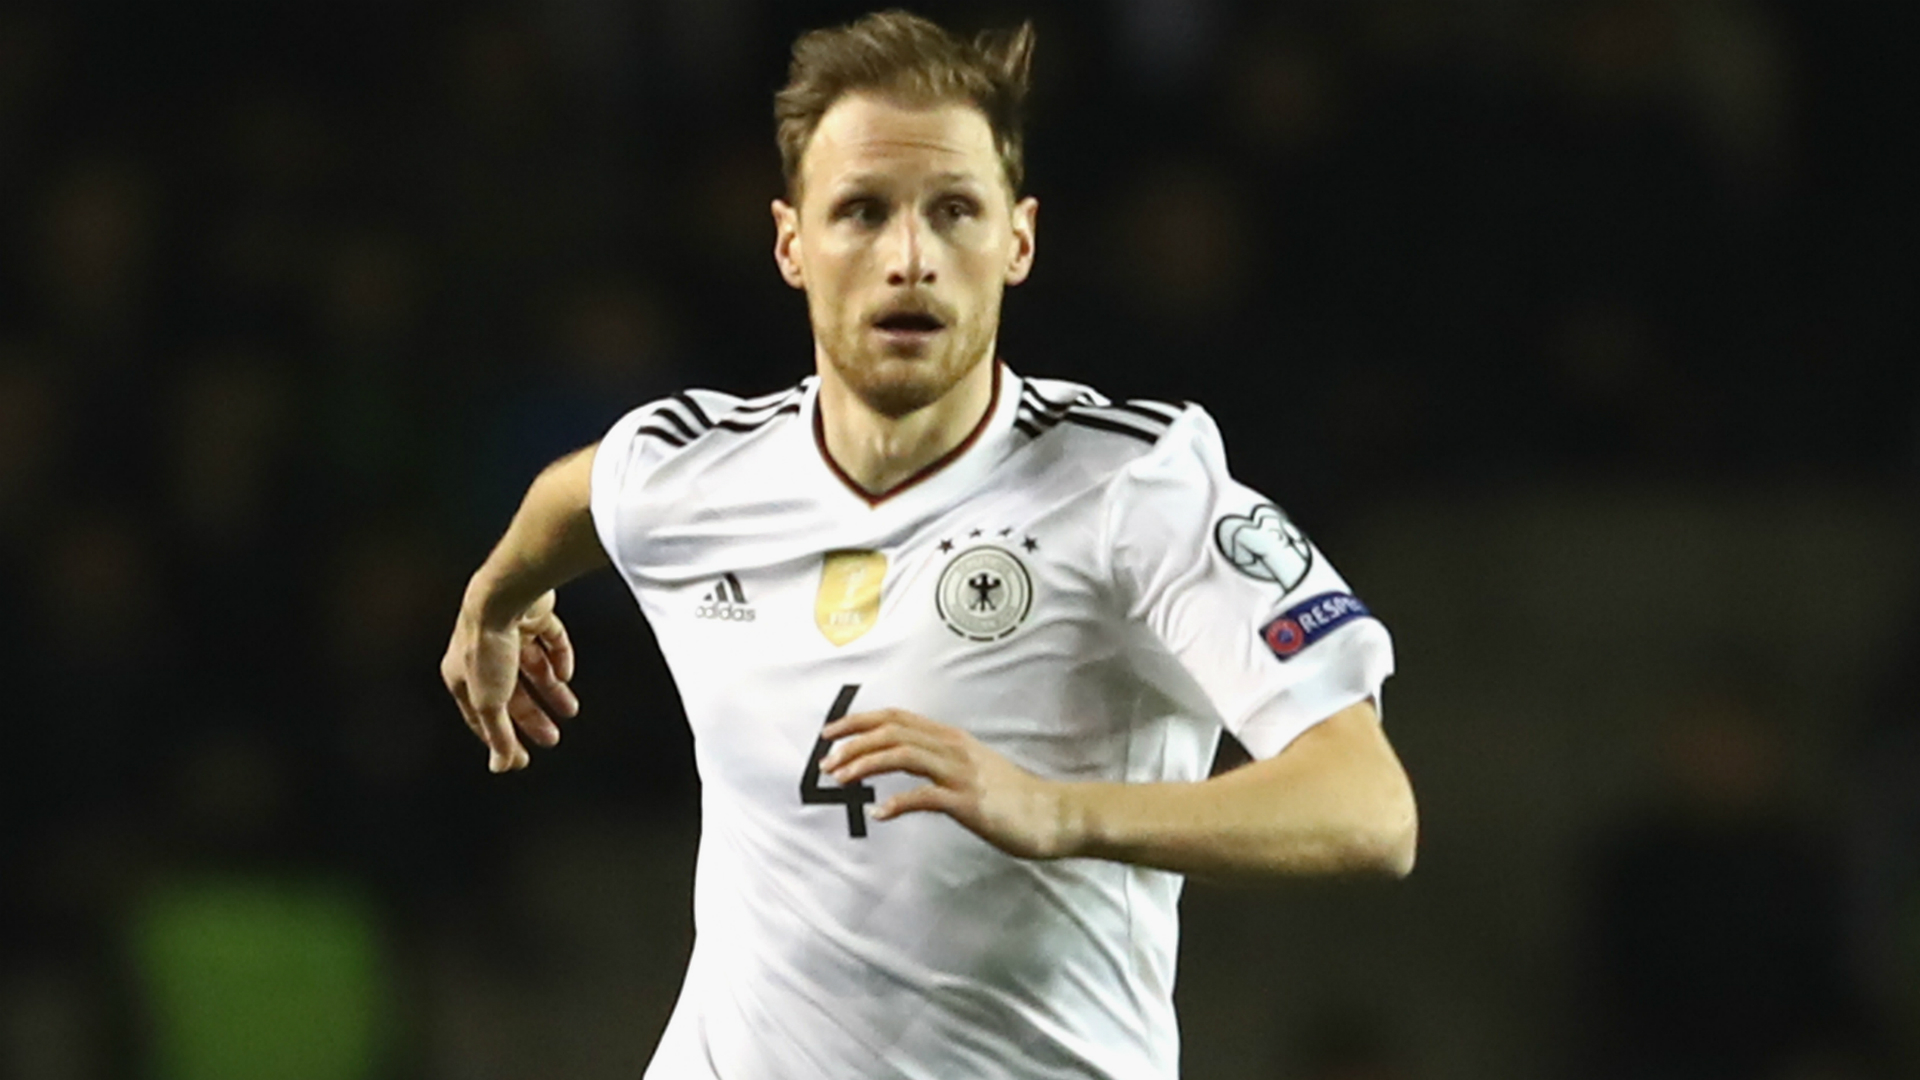 Arsenal held last-ditch talks over Benedikt Howedes transfer, confirms defender's agent